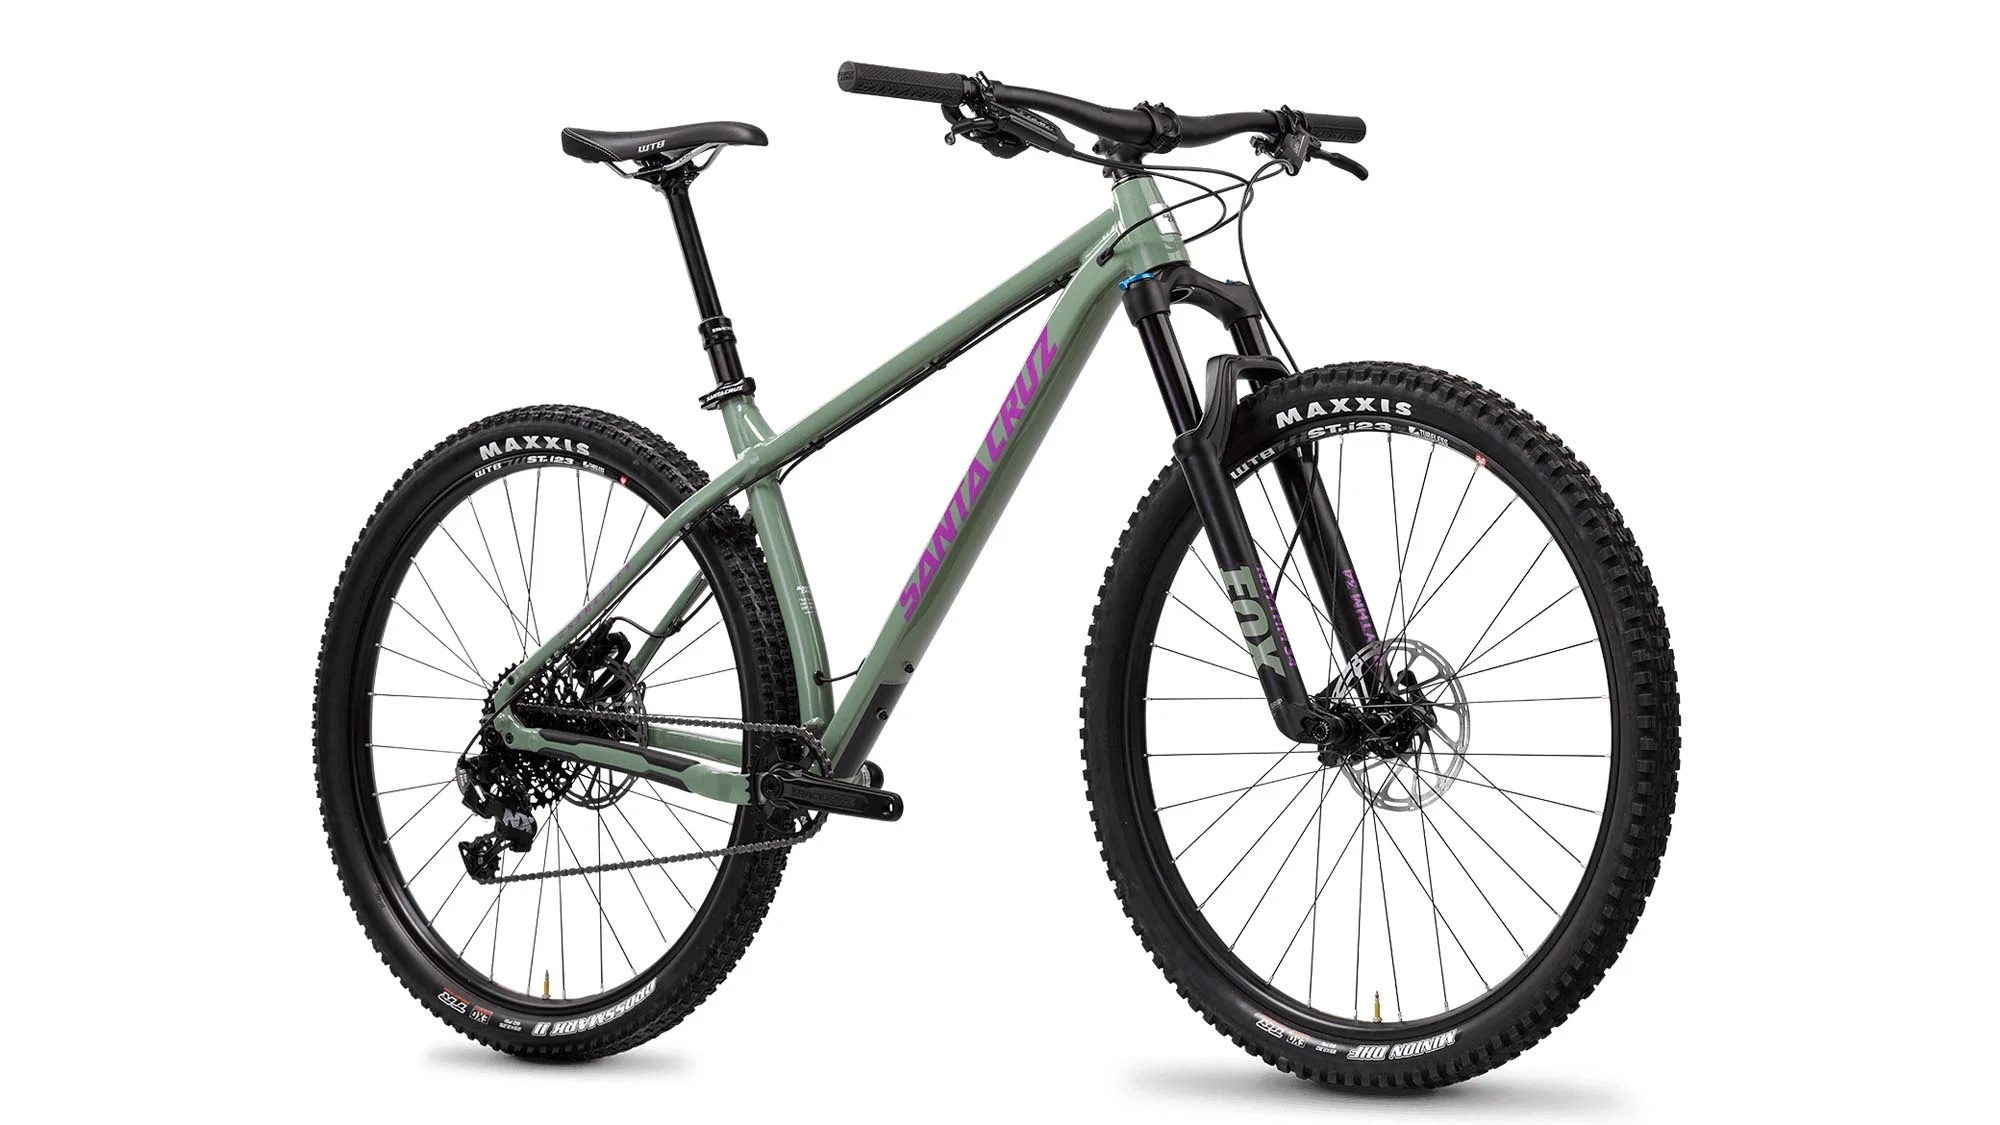 Best mountain bikes 2018: Get out on the trails with our